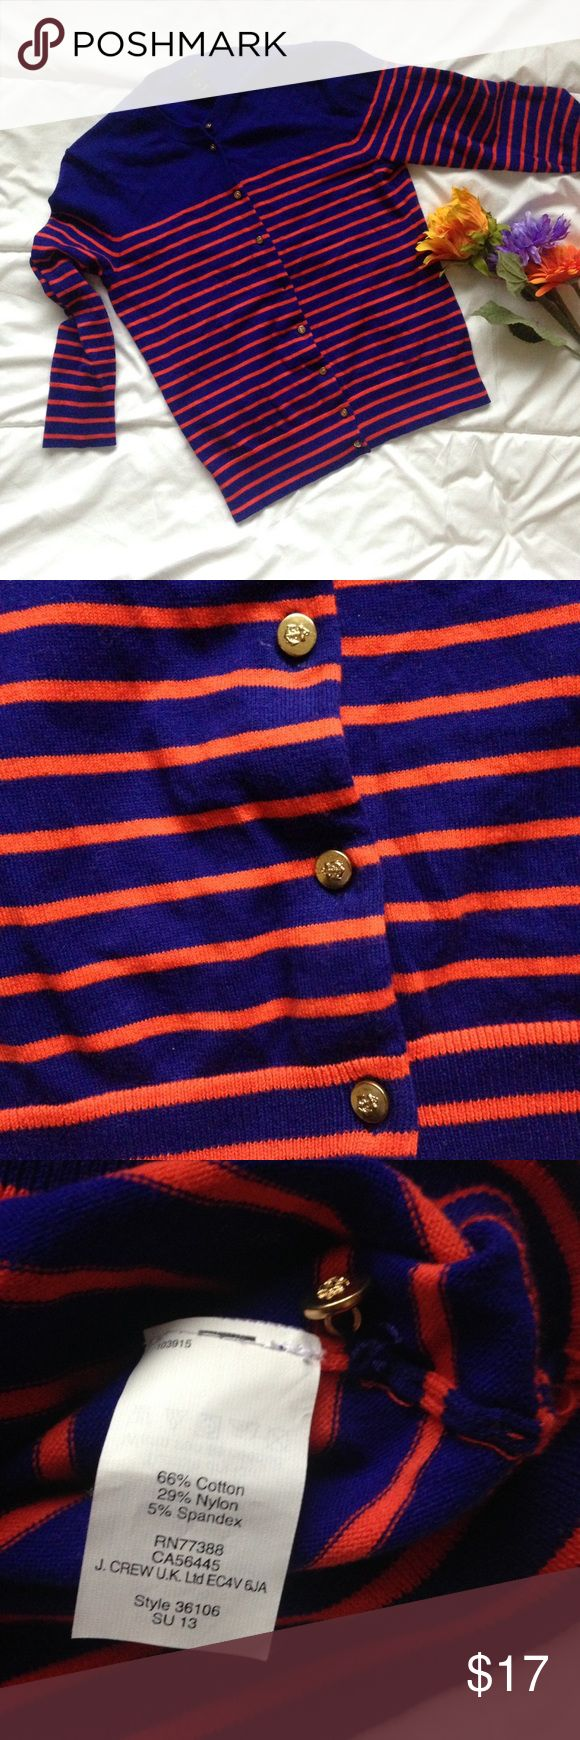 "J Crew nautical cardigan blue and red stripes Very good used condition. One button is loose and one button is missing but there is an extra button included that can be sewn on. Buttons have anchors on them. 66% cotton. Machine wash cold gentle cycle. Size small. Chest is 17"" and length is about 21"". Bundle or make an offer! J. Crew Sweaters Cardigans"